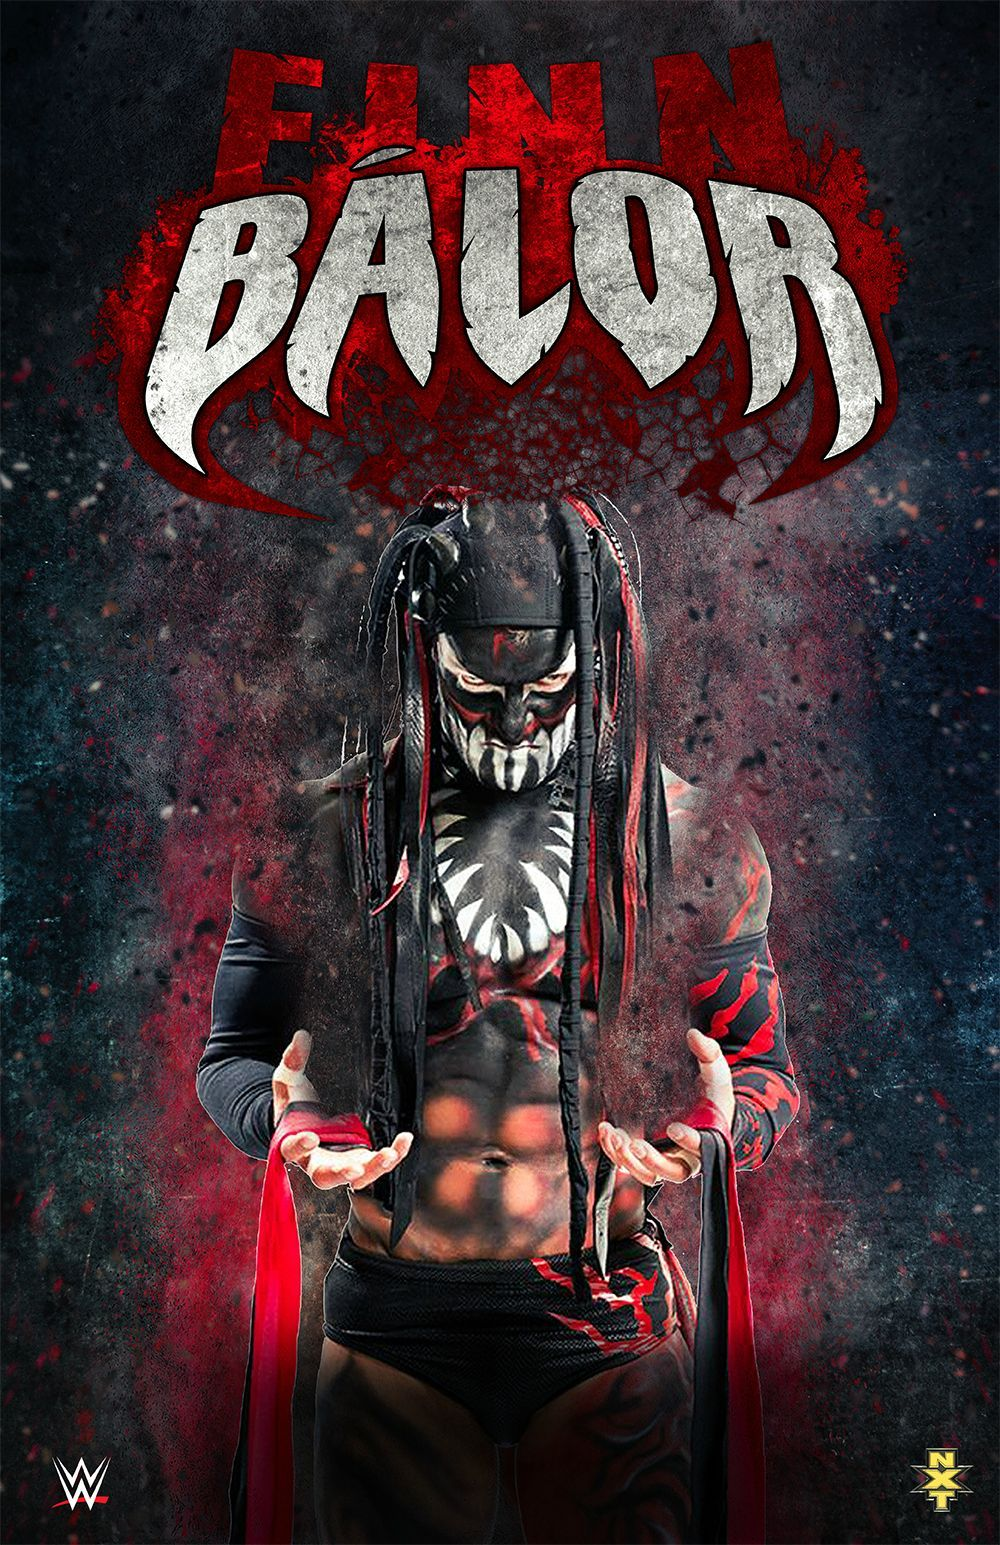 Made A Finn Balor Poster Wrestling Wwe Wwe Wallpapers Wwe